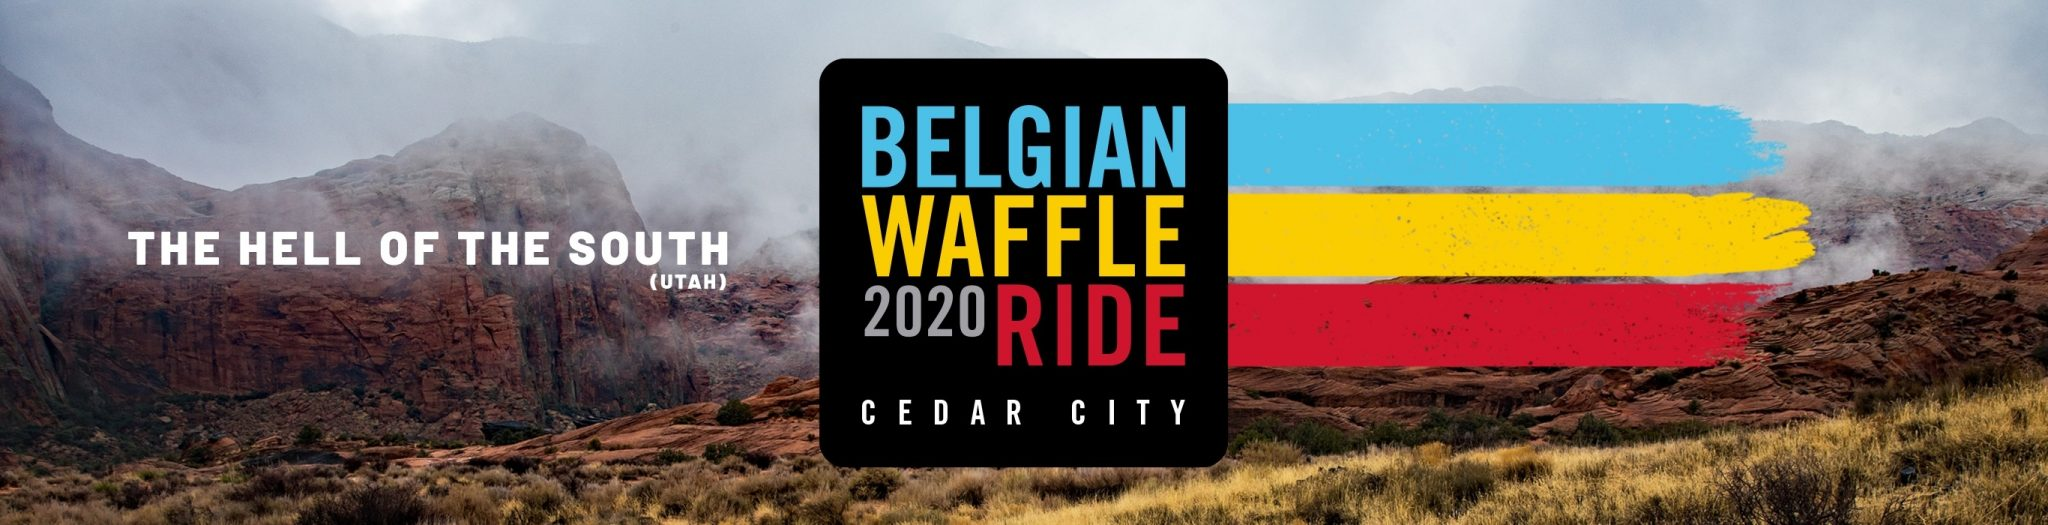 HOW TO WATCH BELGIAN WAFFLE RIDE CEDAR CITY THIS SATURDAY MORNING! | Road Bike Action